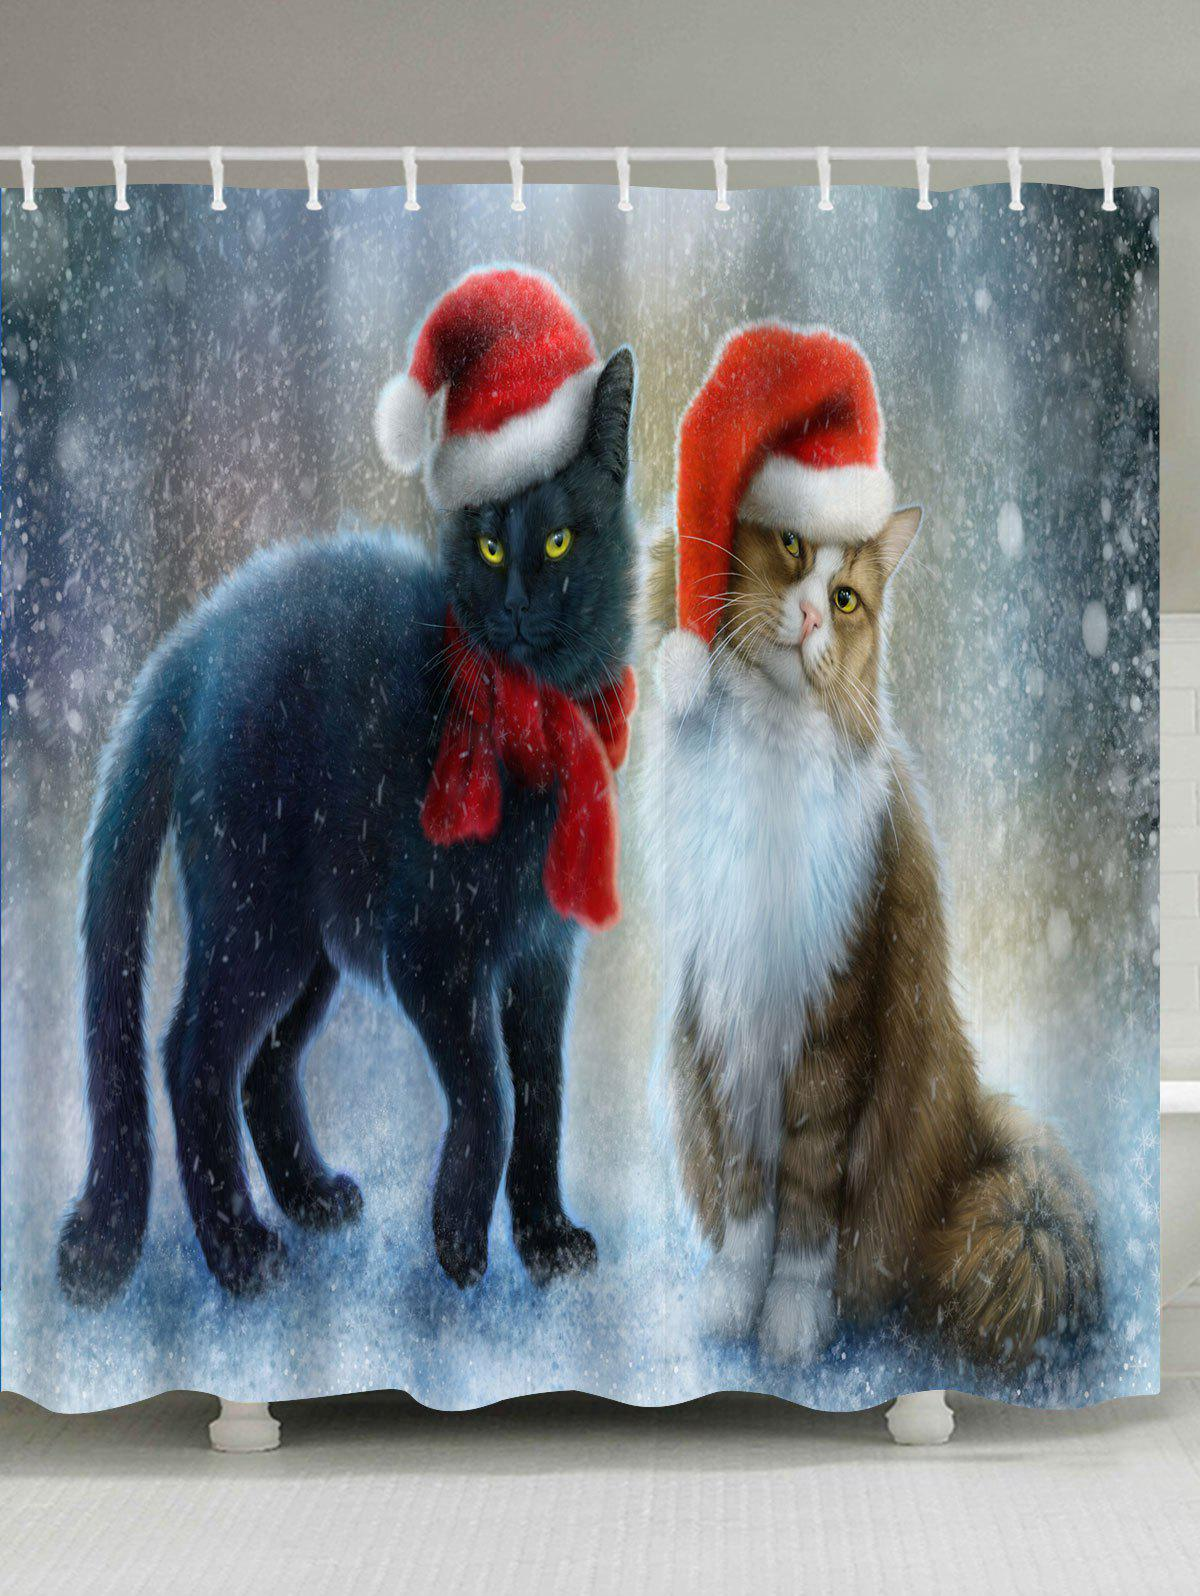 Christmas Cat Partner Printed Waterproof Bath CurtainHOME<br><br>Size: W71 INCH * L71 INCH; Color: COLORMIX; Products Type: Shower Curtains; Materials: Polyester; Pattern: Animal; Style: Festival; Number of Hook Holes: W59 inch*L71 inch: 10; W71 inch*L71 inch: 12; W71 inch*L79 inch: 12; Package Contents: 1 x Shower Curtain 1 x Hooks (Set);